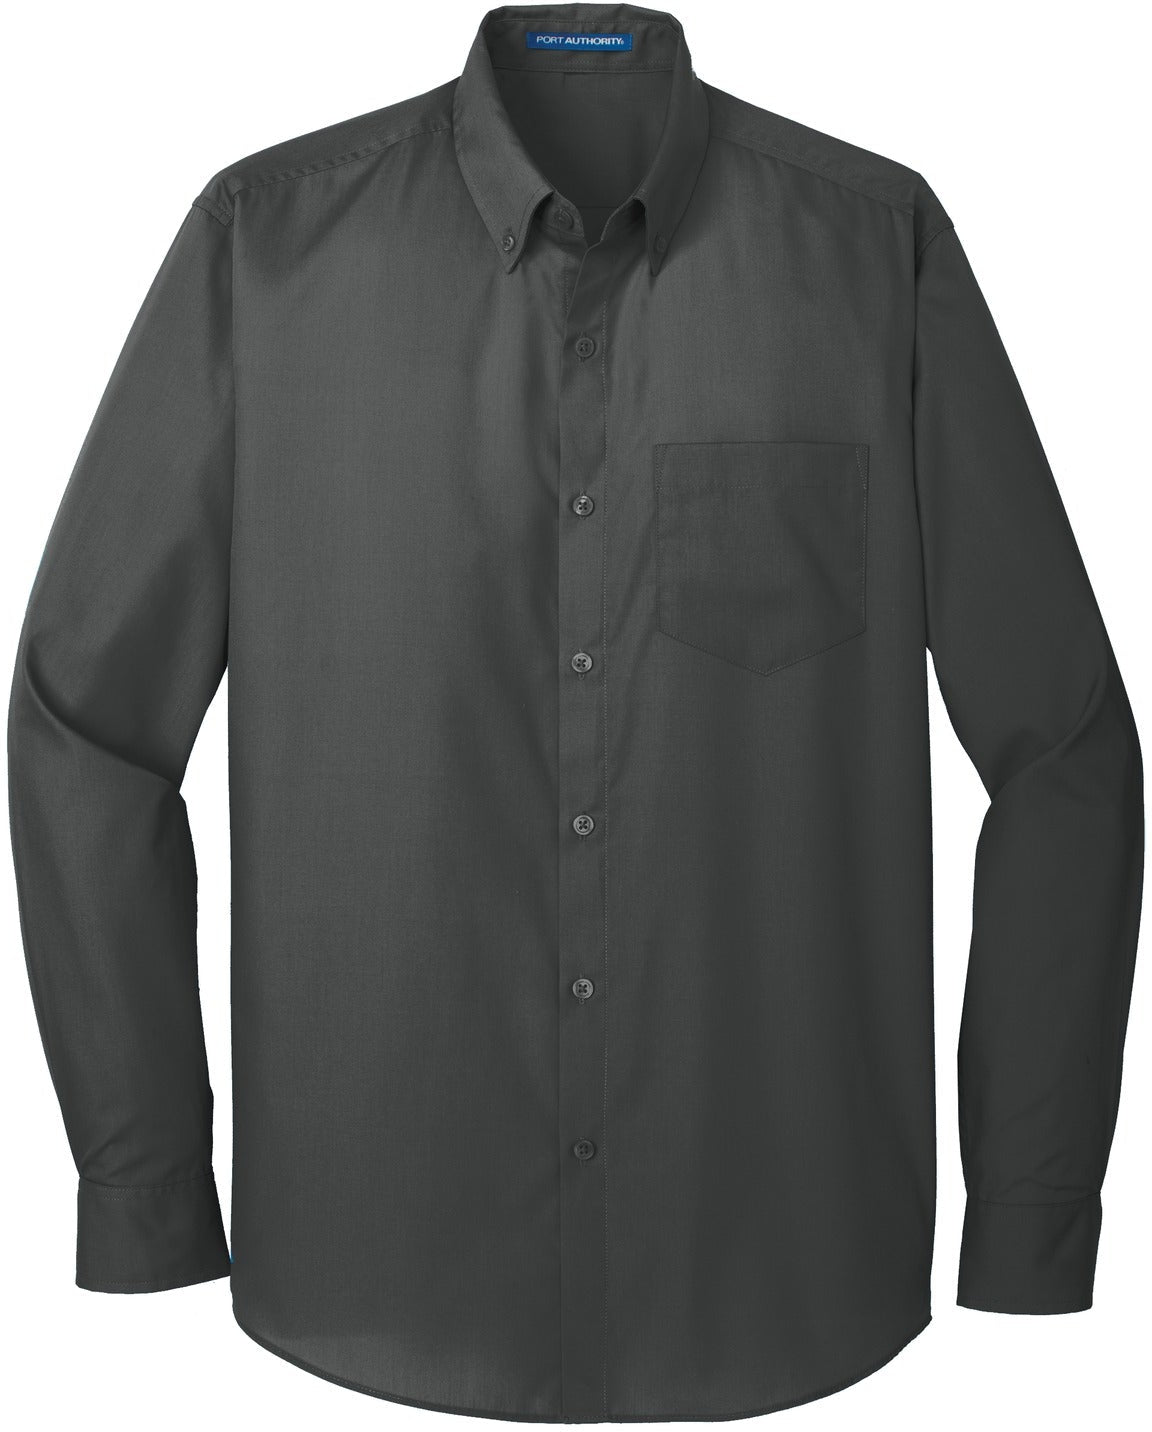 Carefree Poplin Shirt